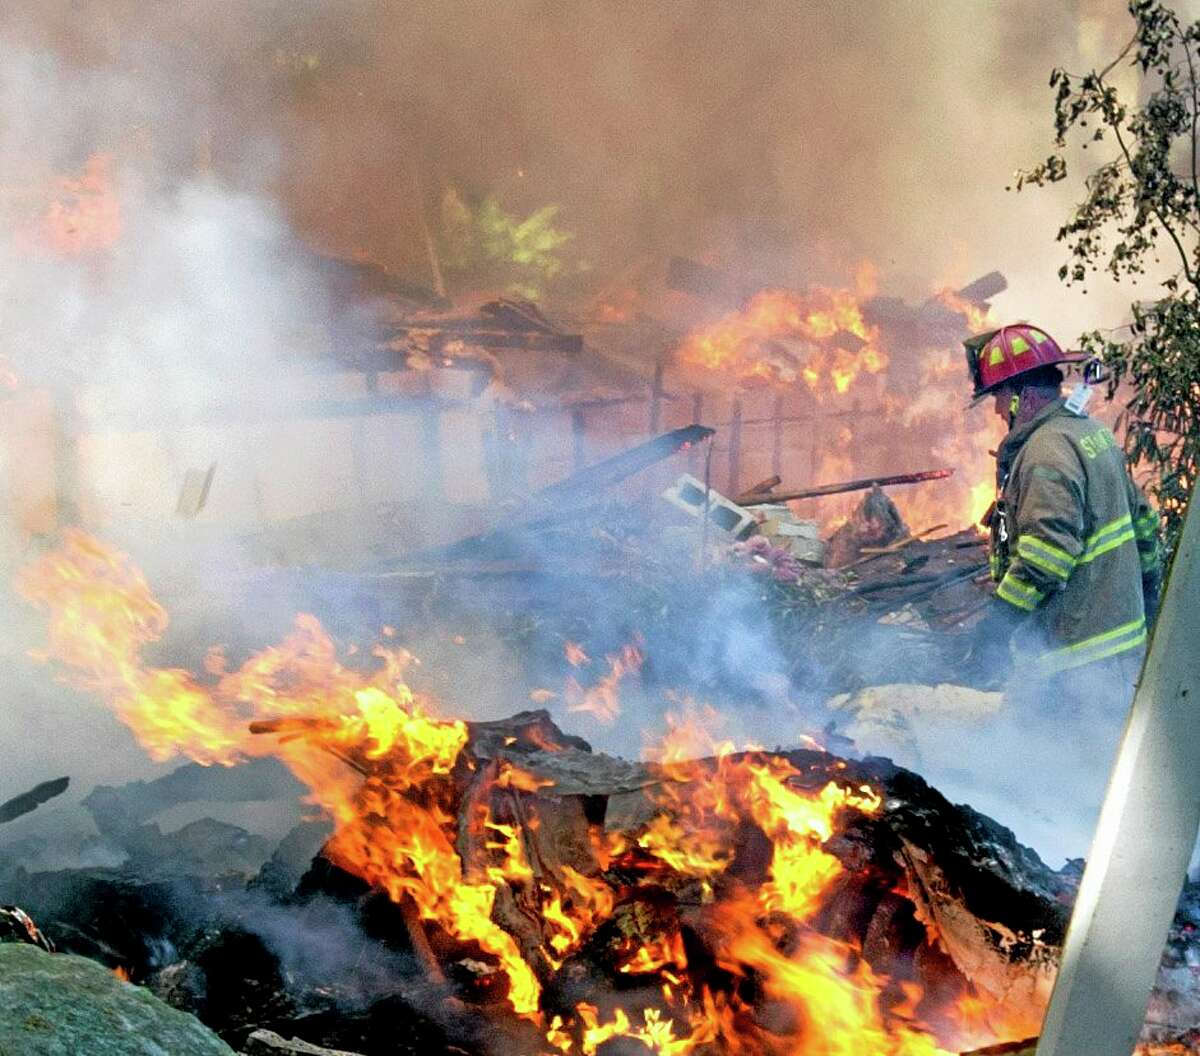 A firefighter walks through the burning rubble of a six-bedroom house on Webbs Hill Road in Stamford, Conn. that exploded on Tuesday, Sept. 17, 2013. The homeowner was outside near a pool house on the property at the time of the explosion, according to Stamford's director of public safety, Ted Jankowski. (AP Photo/The Stamford Advocate, Lindsay Perry)